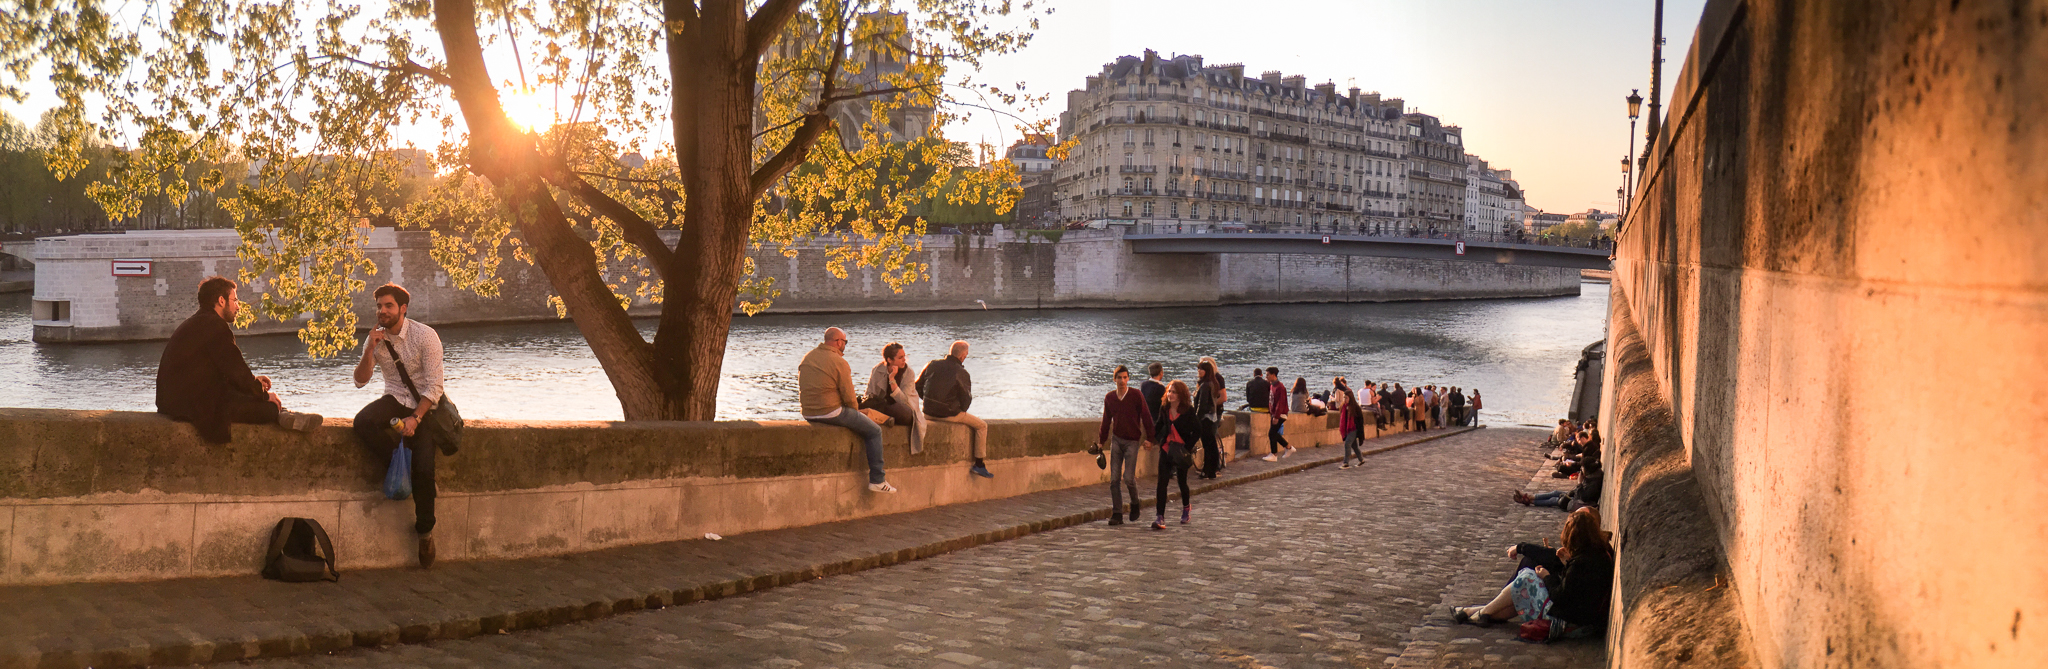 Friends and couple crowd the banks of the Seine River during sunset in Paris, France.